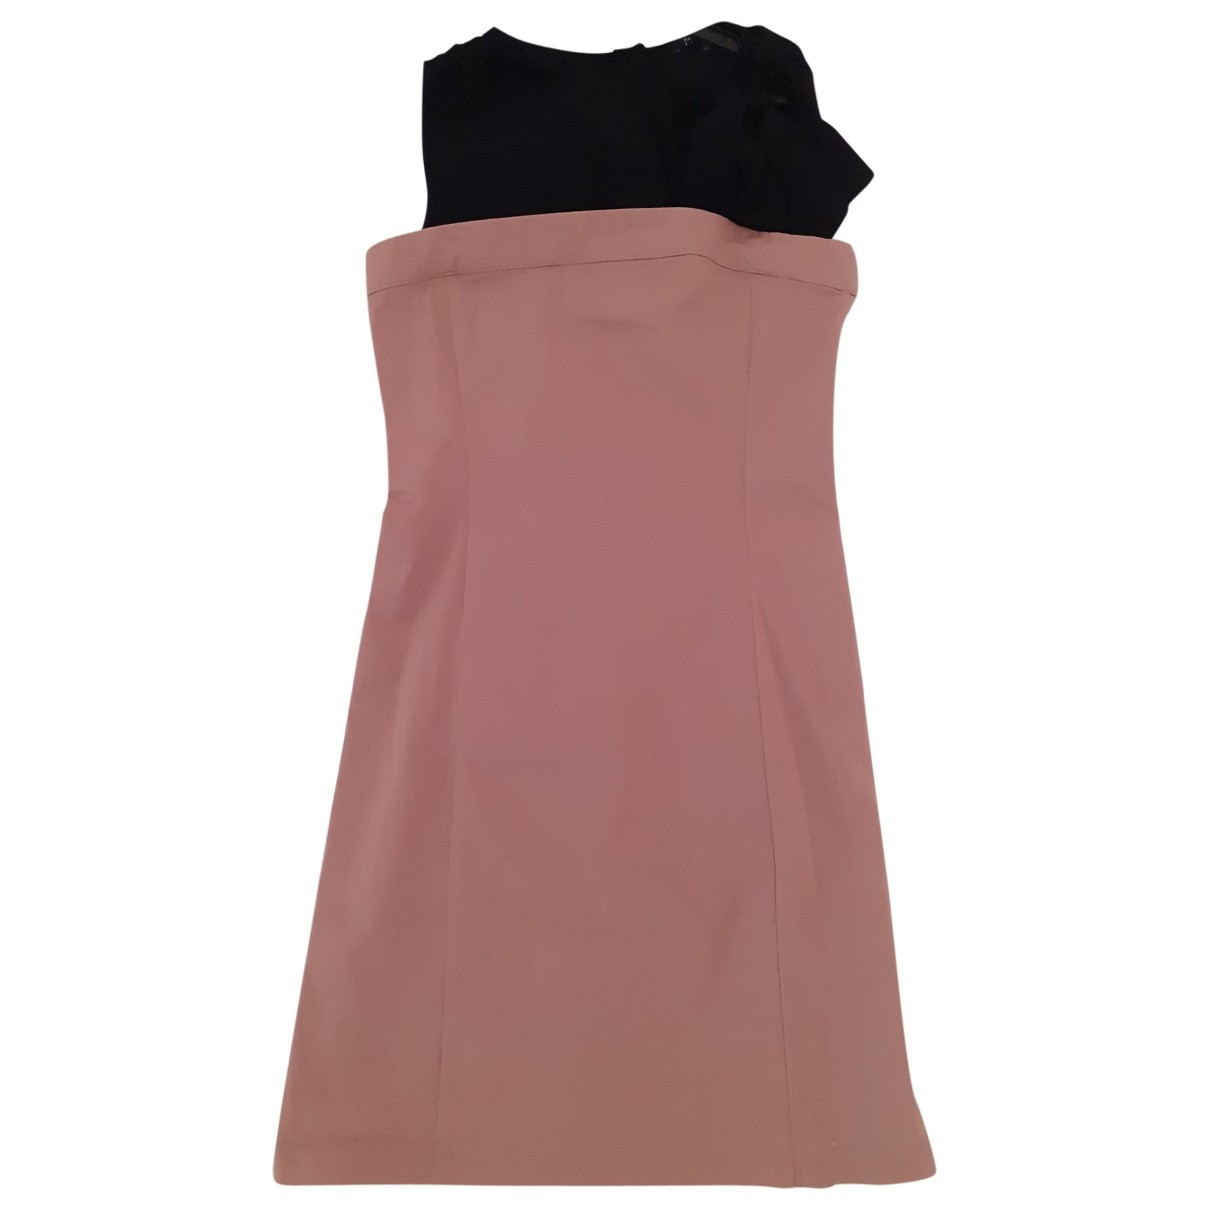 Patrizia Pepe \N Pink Cotton dress for Women 44 IT